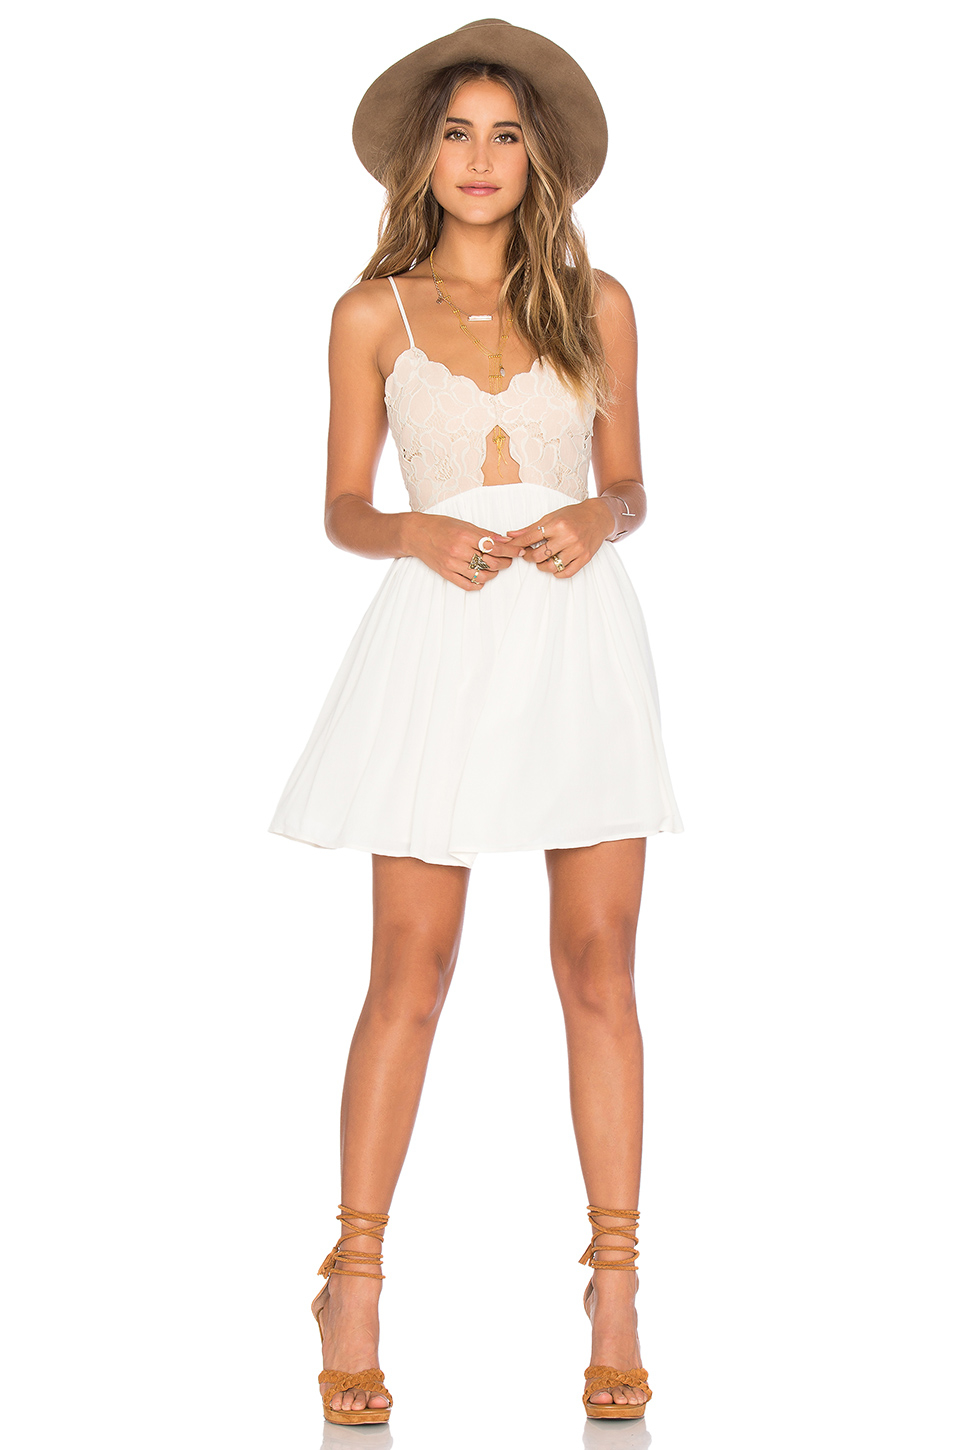 How to use a Revolveclothing.com coupon